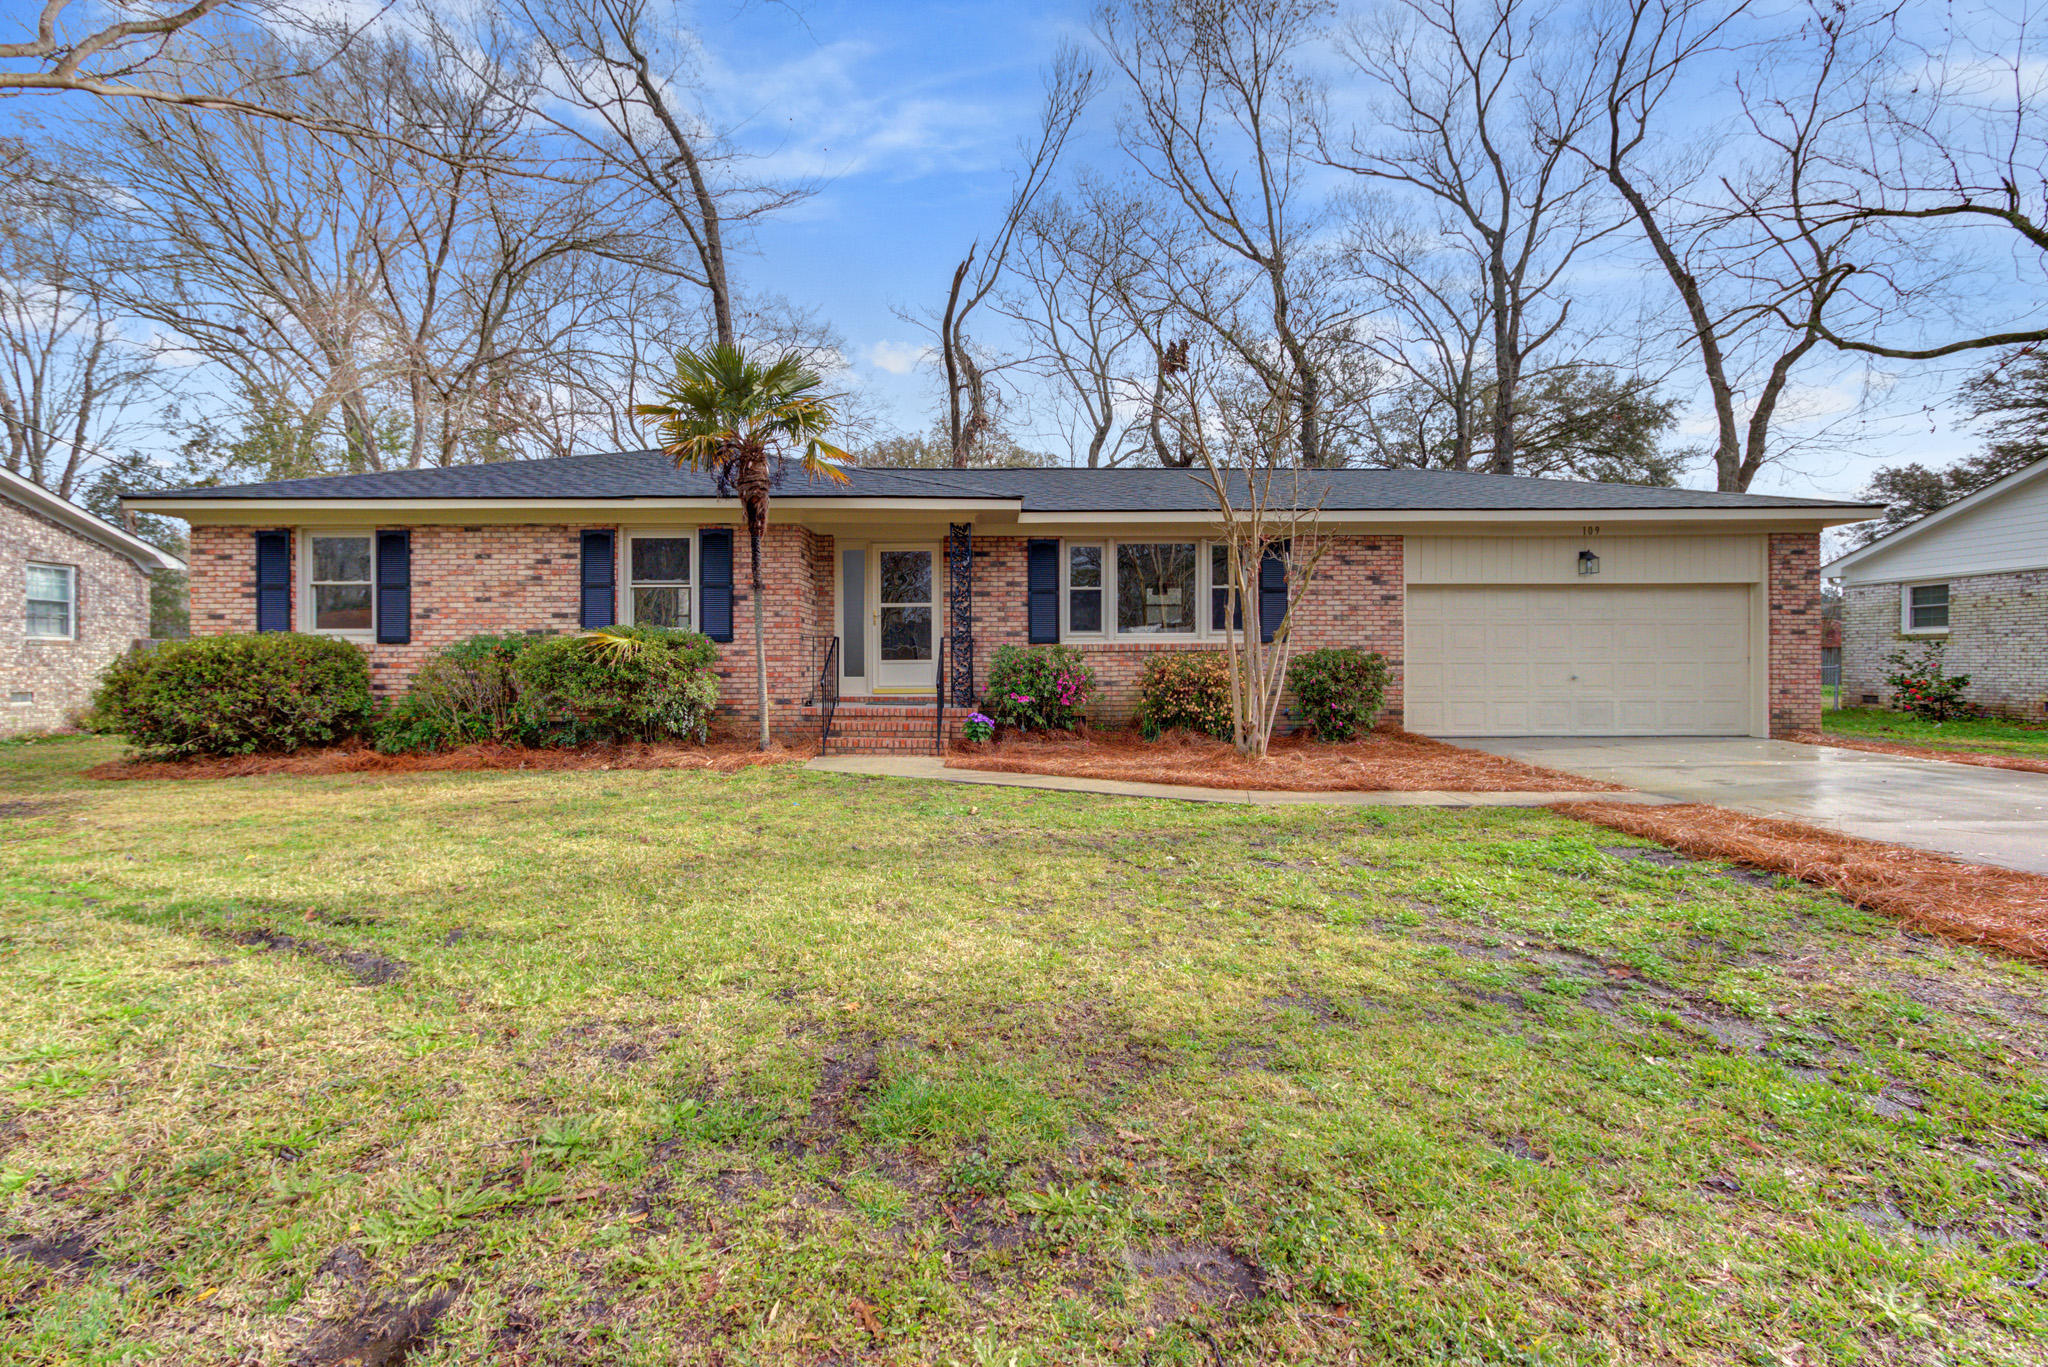 North Tranquil Acres Homes For Sale - 109 Monroe, Ladson, SC - 21